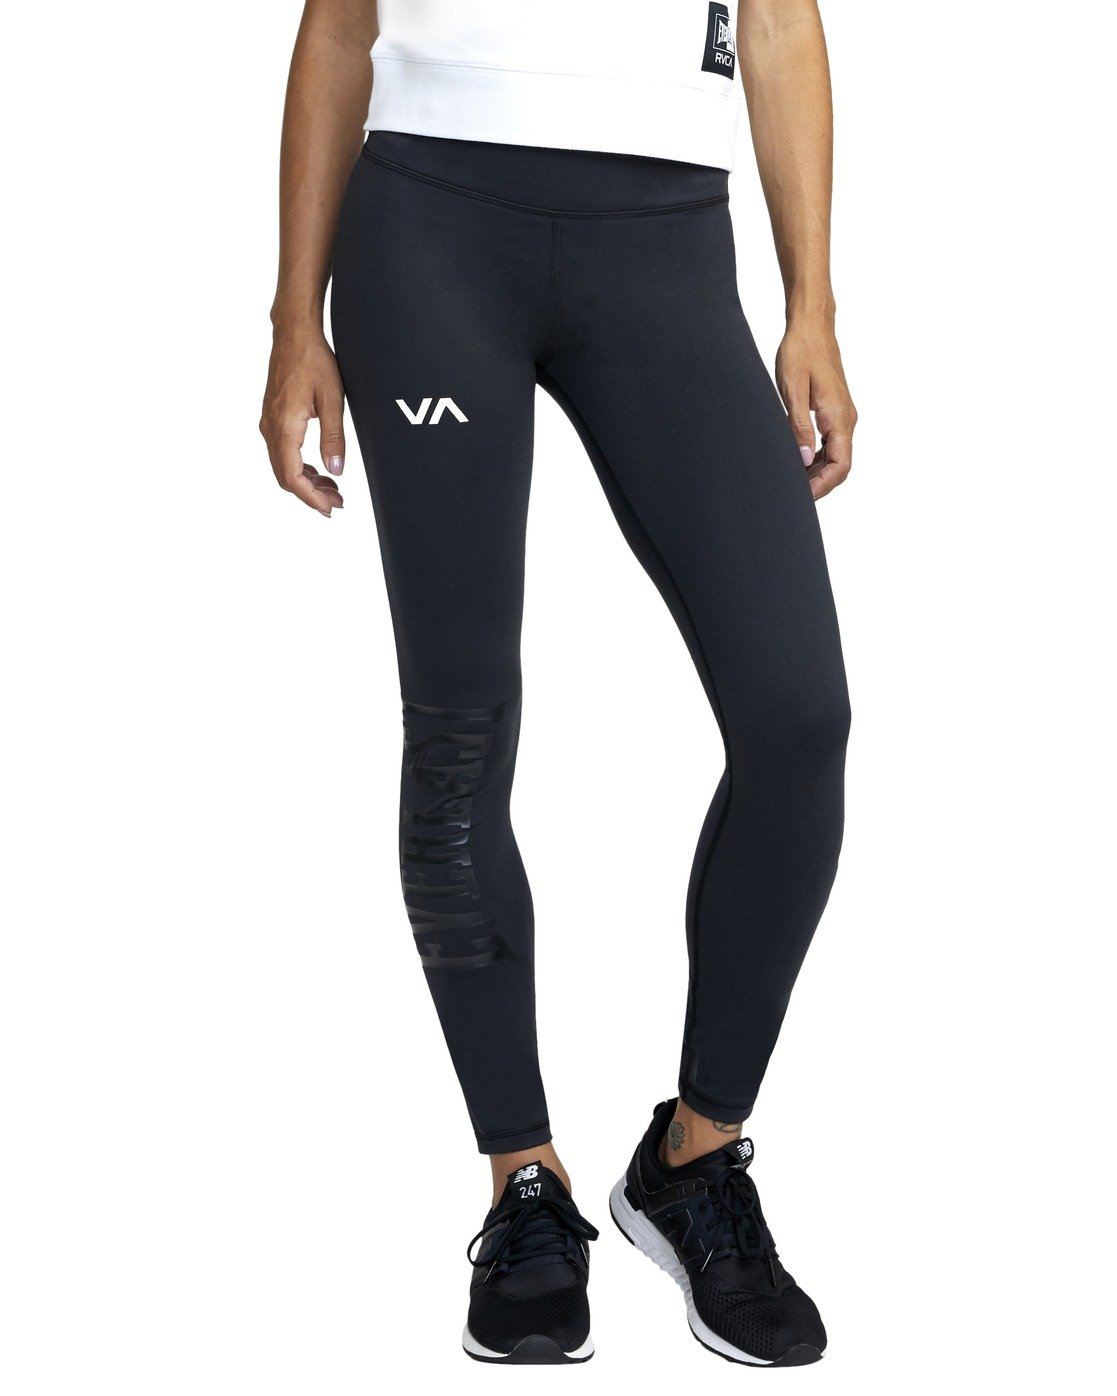 6 EVERLAST SPORT WORKOUT LEGGING Black TQ163REL RVCA